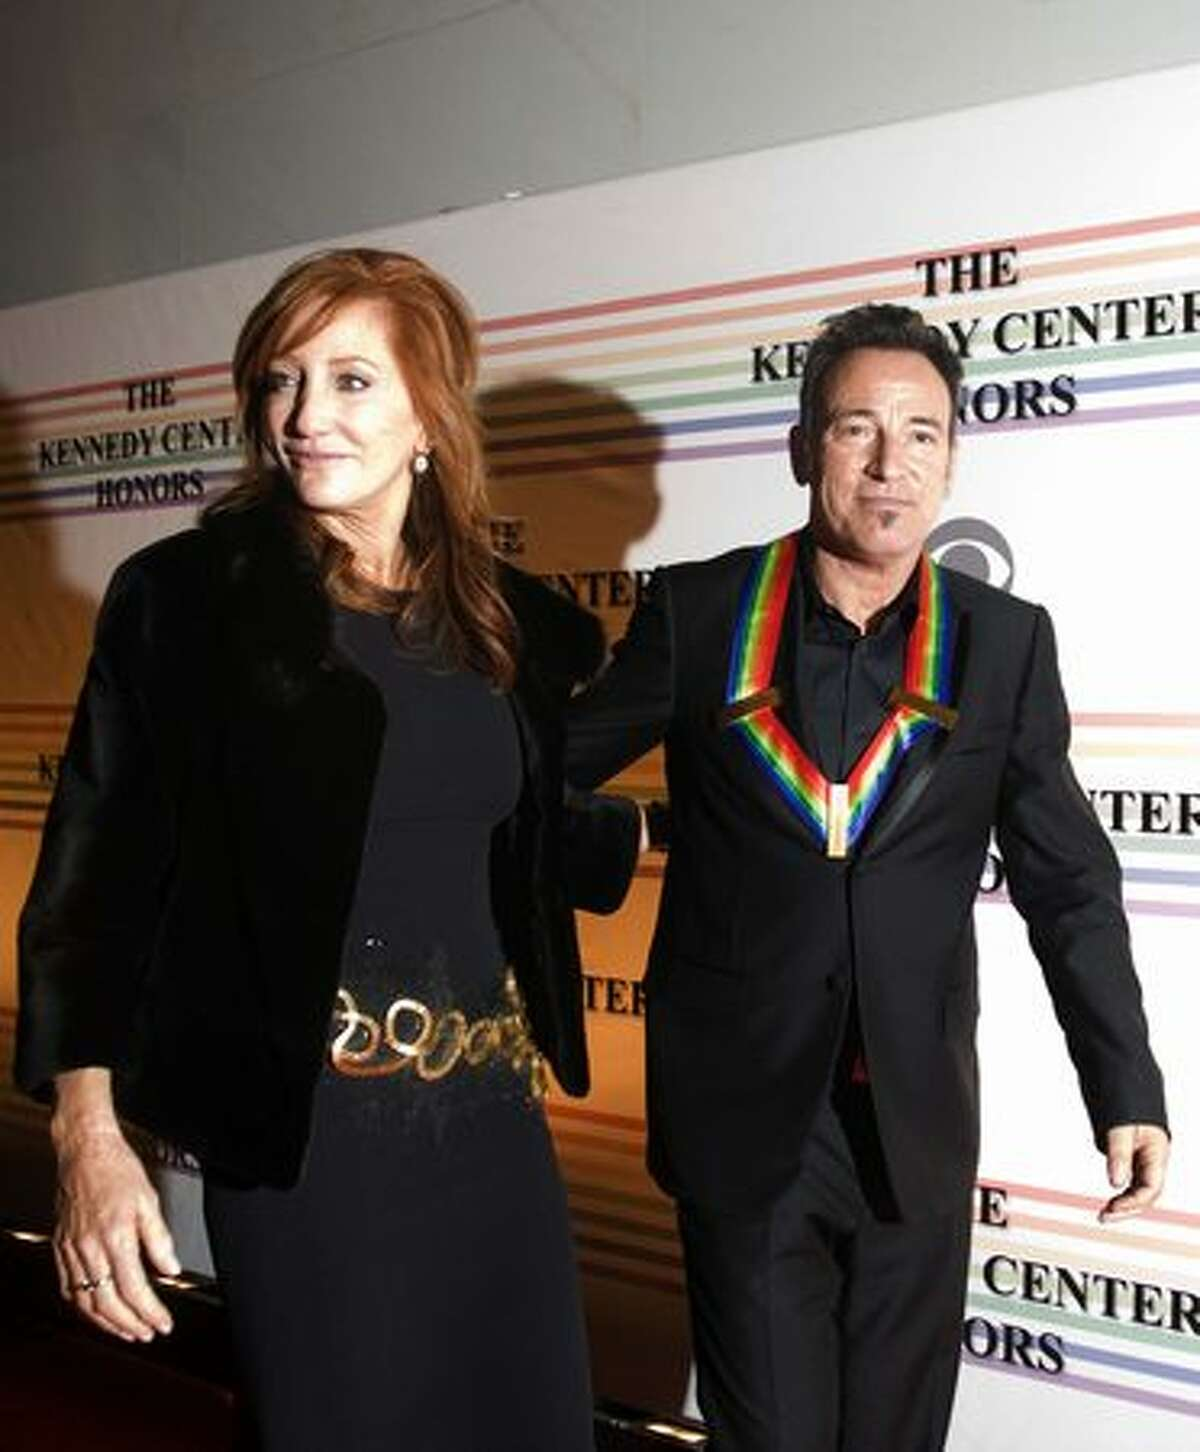 Patti Scialfa and Bruce Springsteen pose for photos on the red carpet.